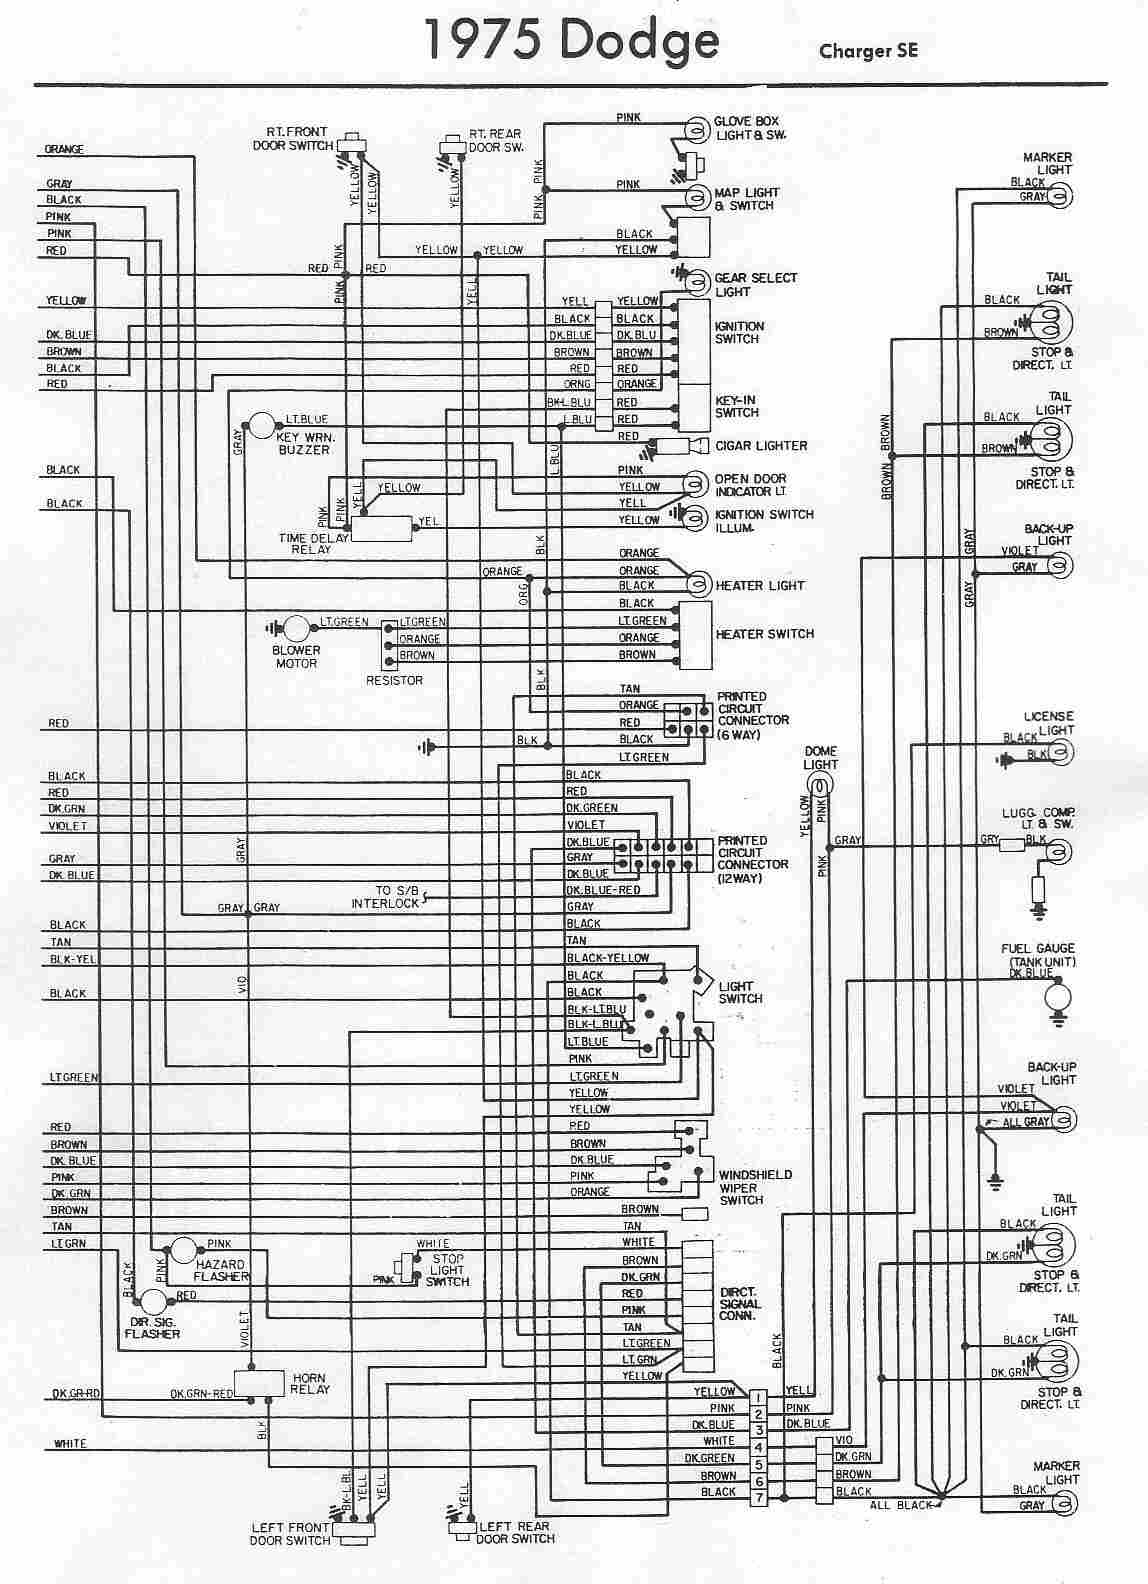 electrical wiring diagram of 1975 dodge charger?t=1508404771 dodge car manuals, wiring diagrams pdf & fault codes 2007 dodge charger wiring diagram at pacquiaovsvargaslive.co